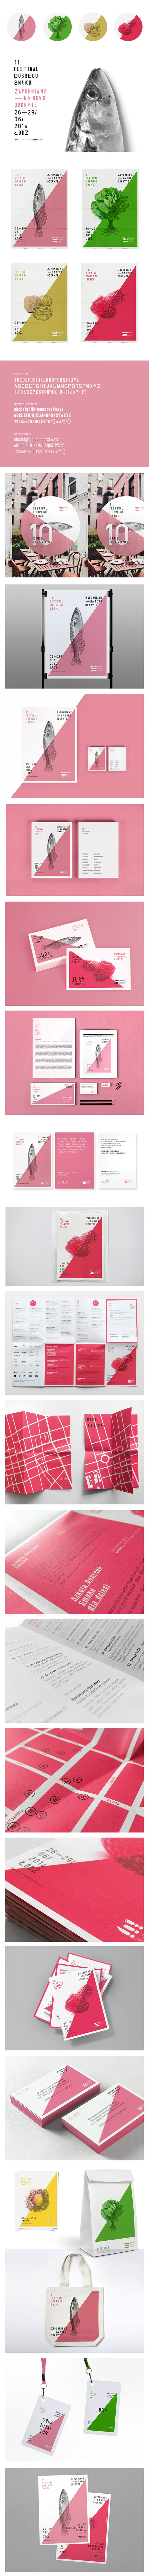 identity of the 11. Festival Dobrego Smaku in Lodz on Branding Served